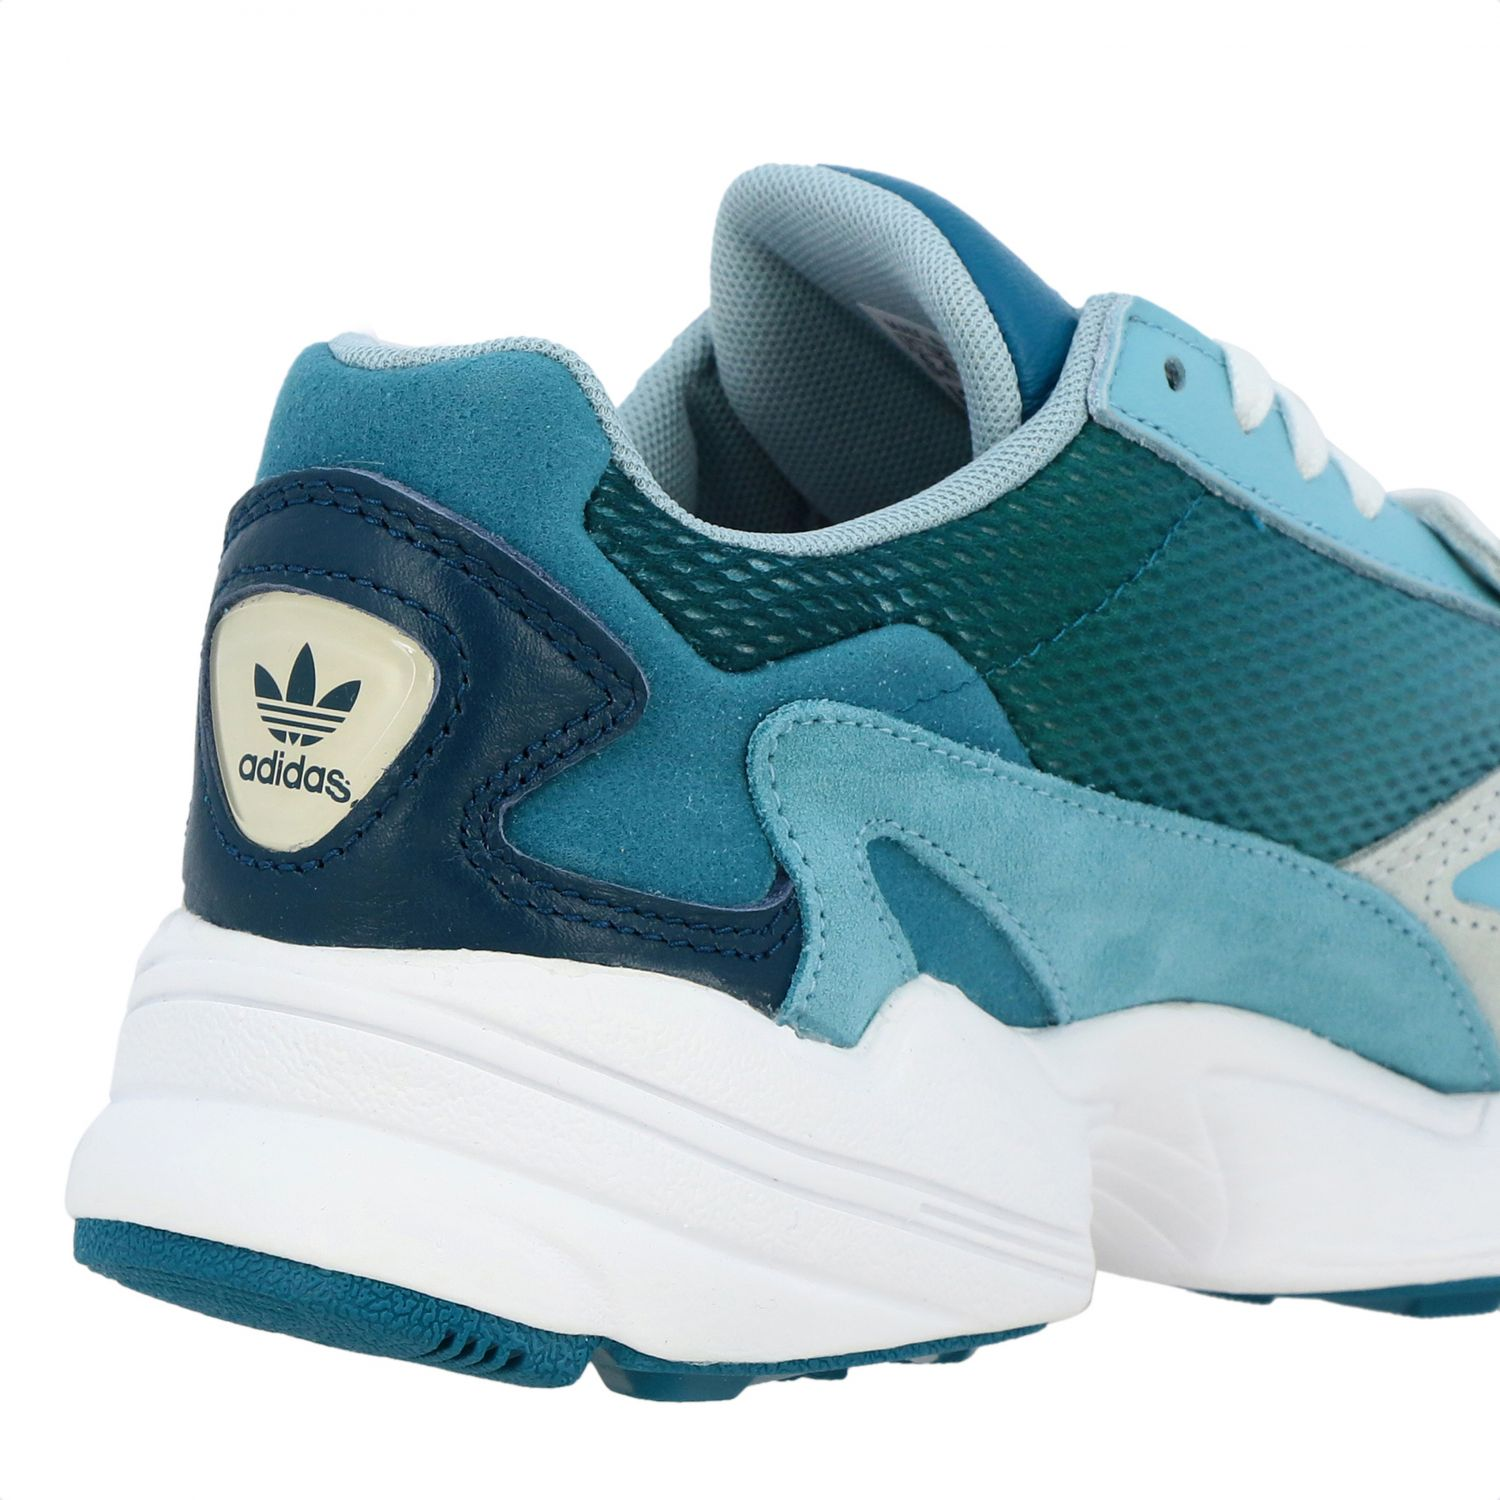 Sneakers Adidas Originals: Sneakers women Adidas Originals By Pharrell Williams petroleum blue 4